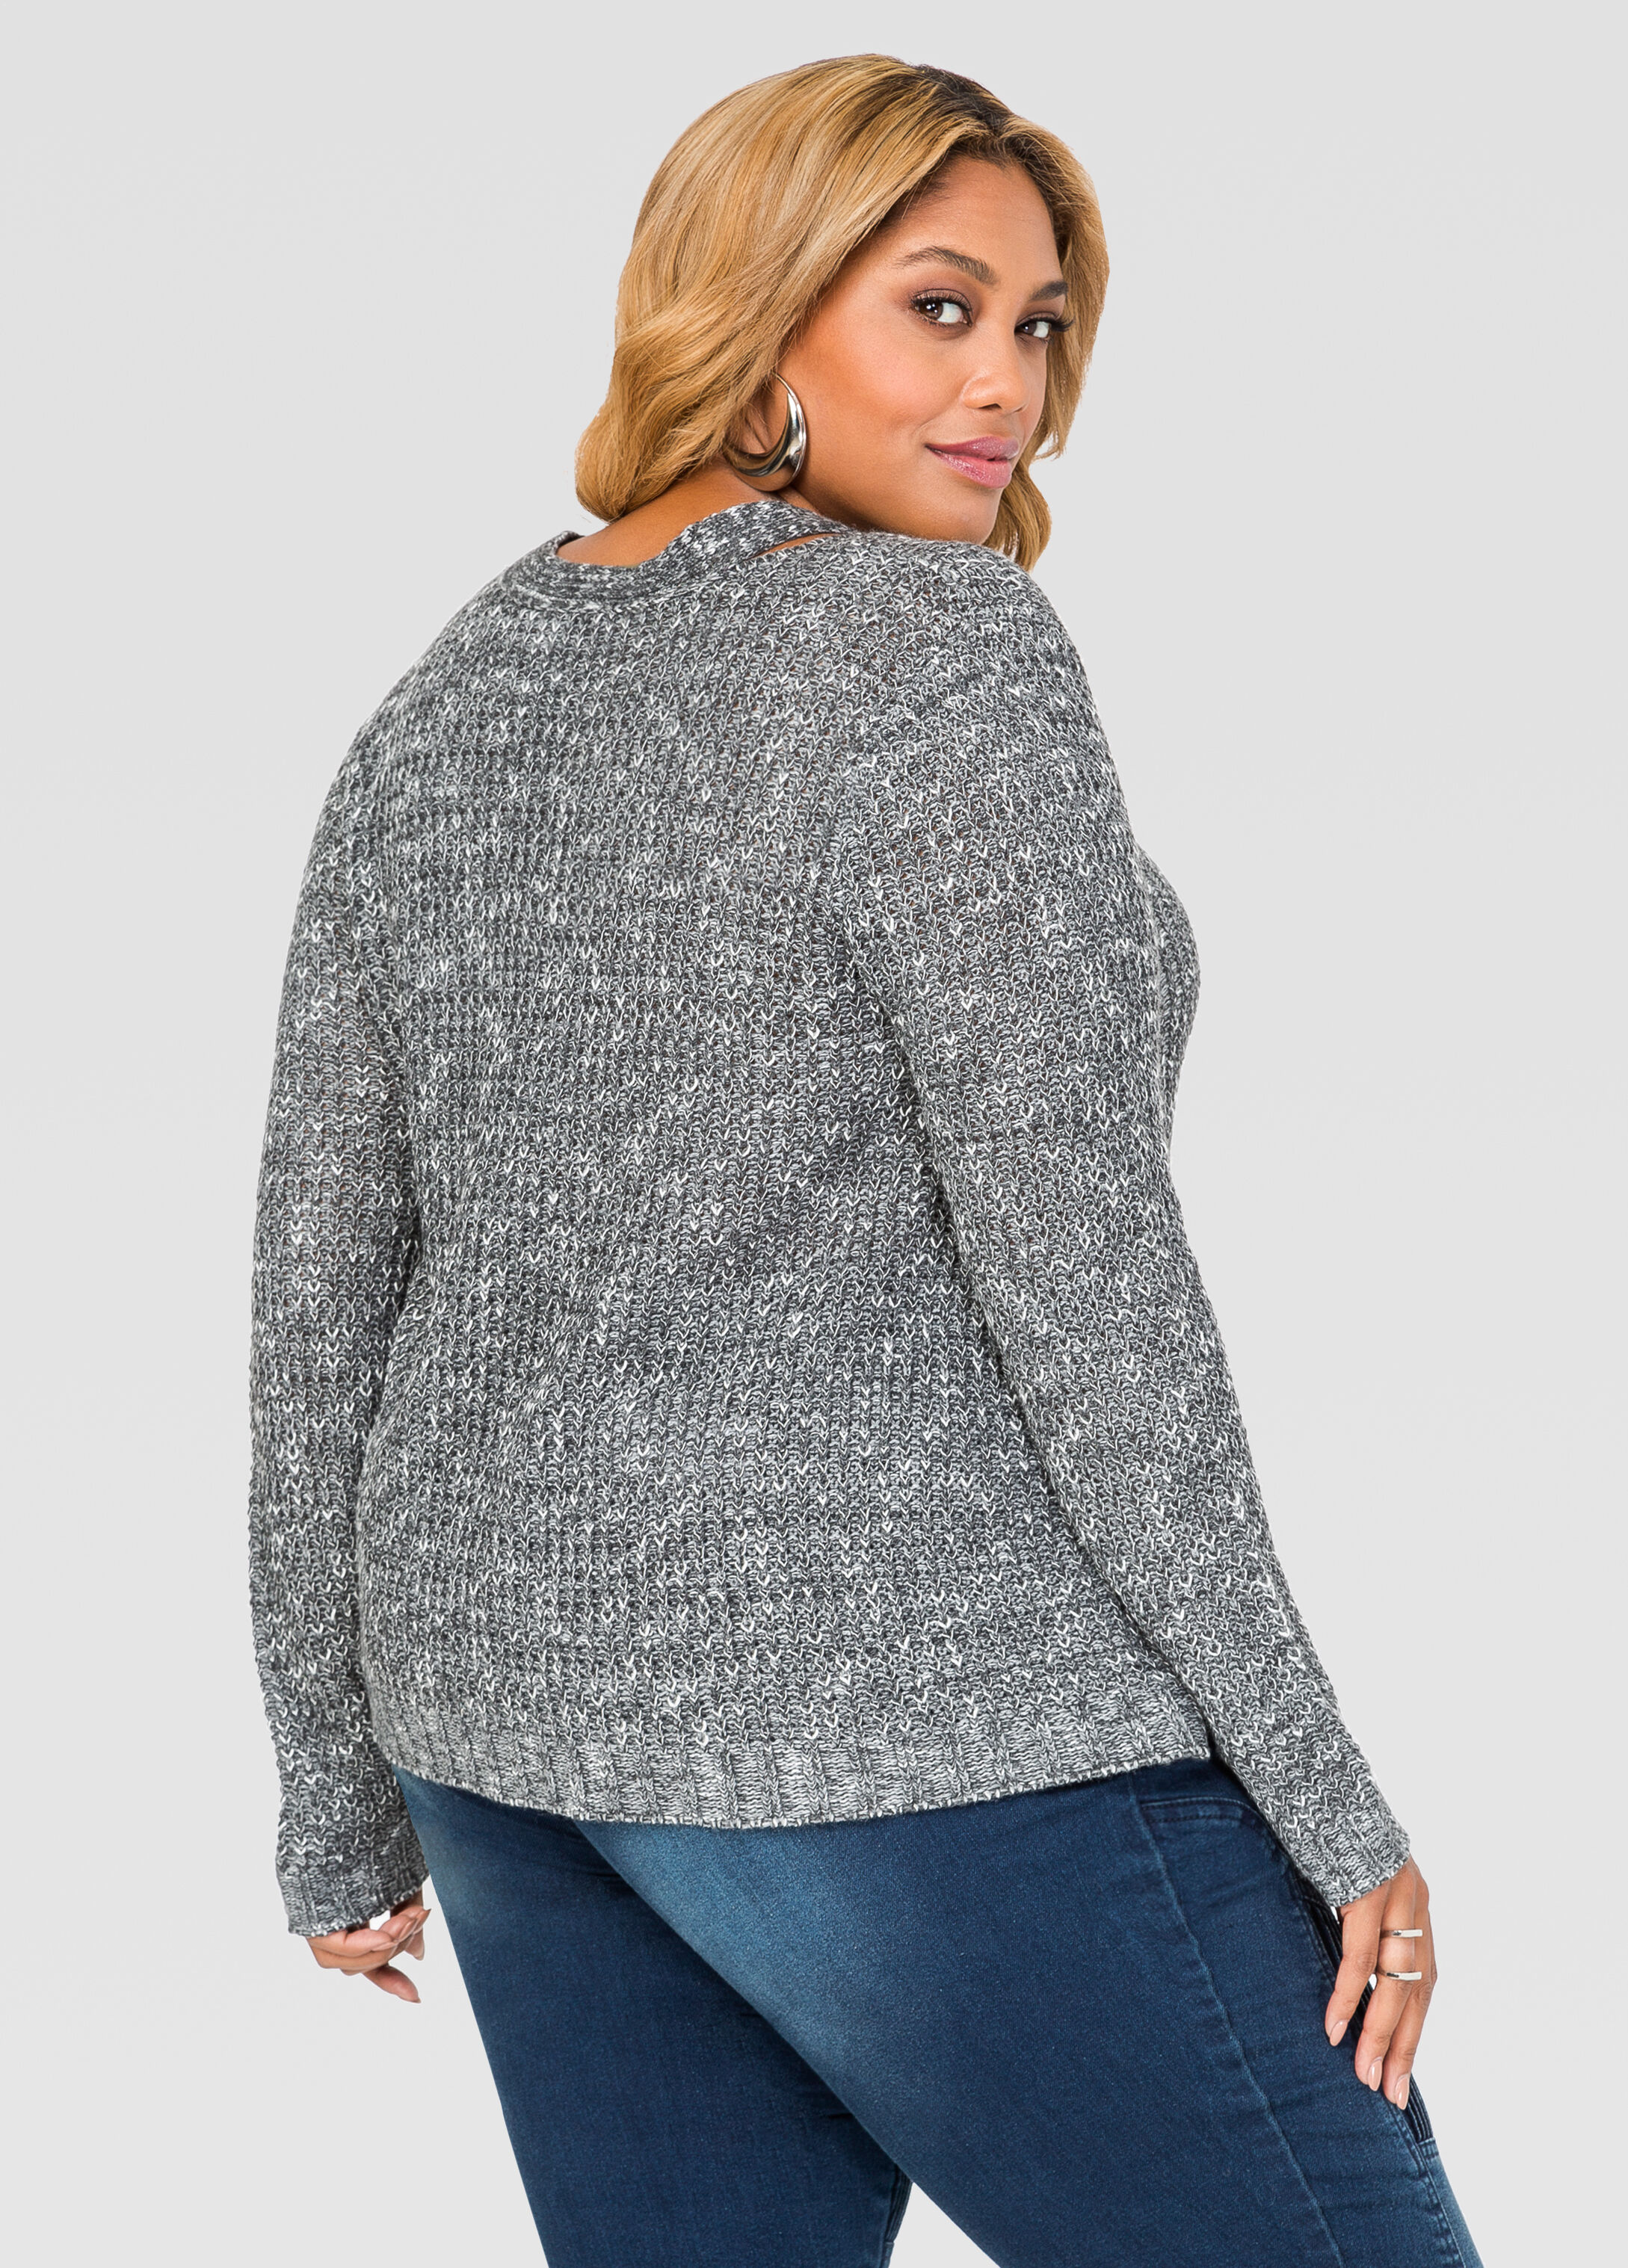 Slit Neck Marled Sweater